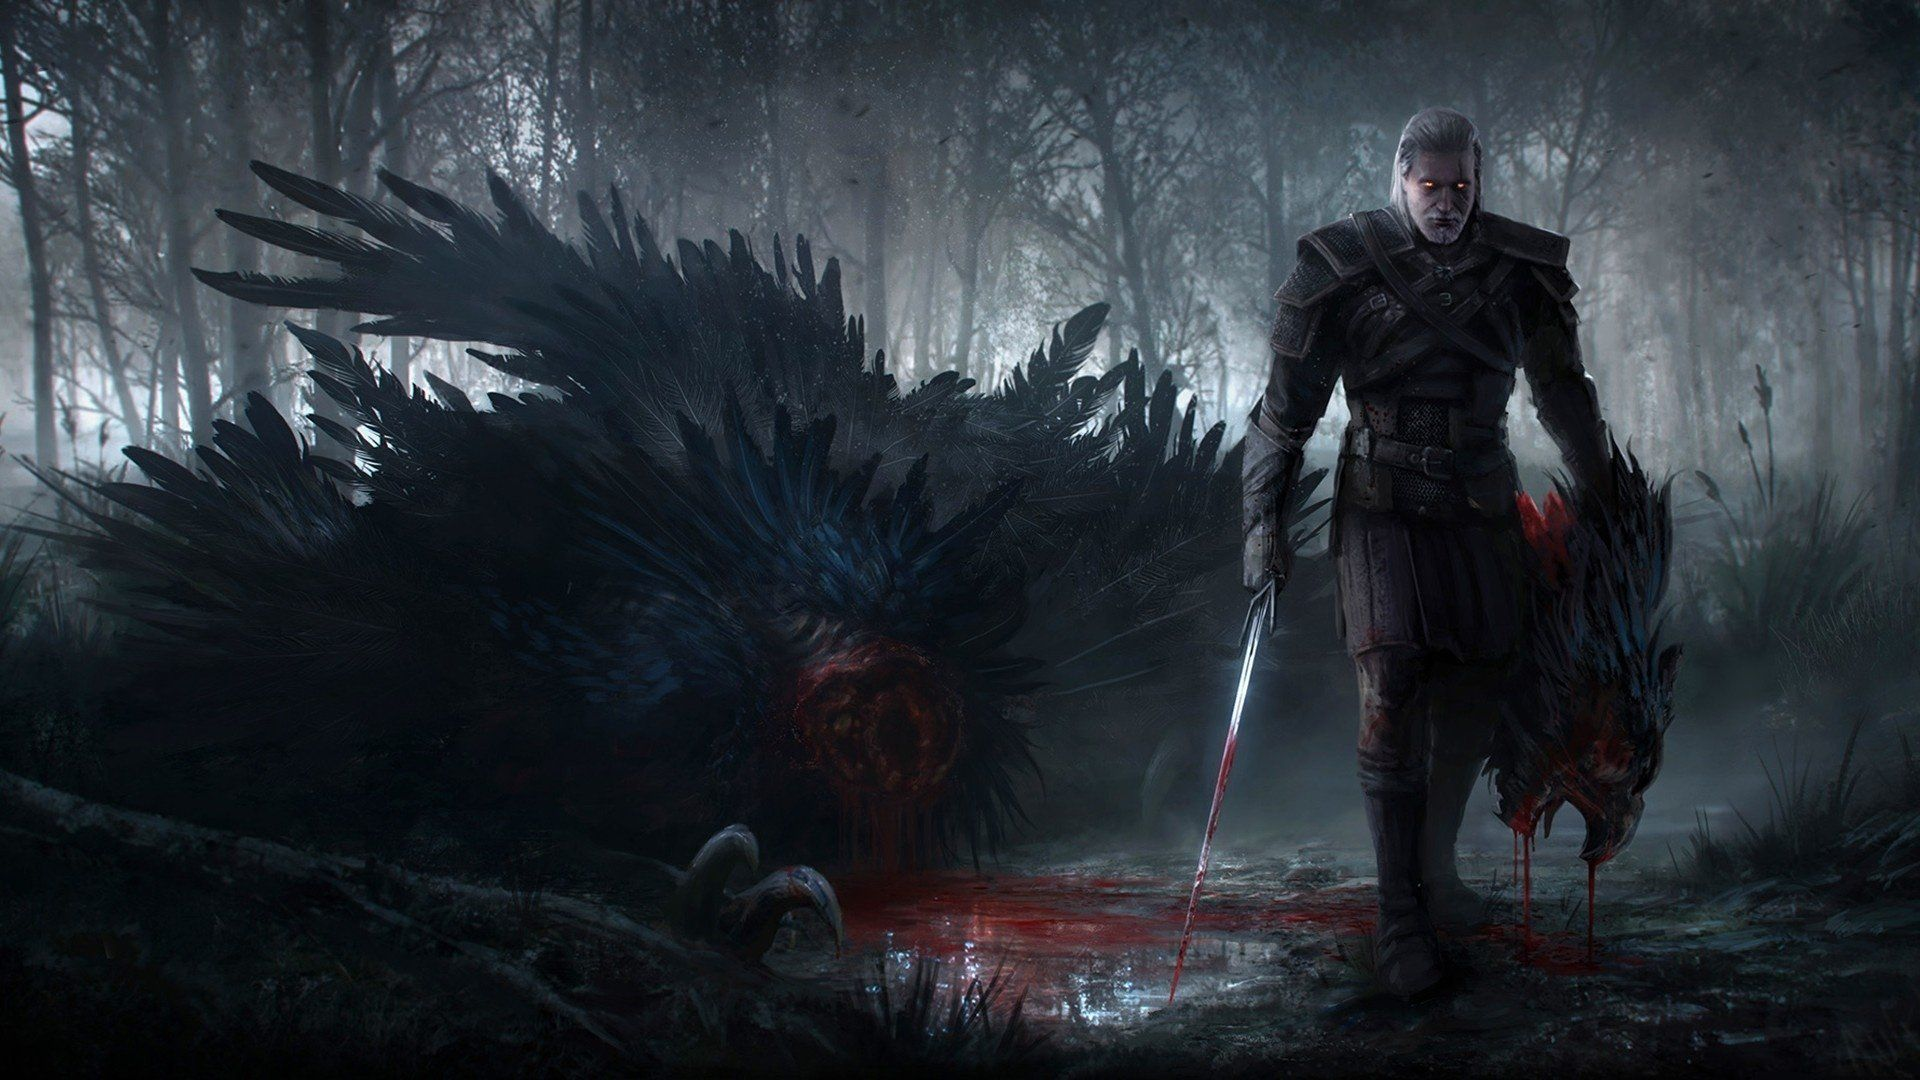 The Witcher Wallpaper Set For Mobile Phones